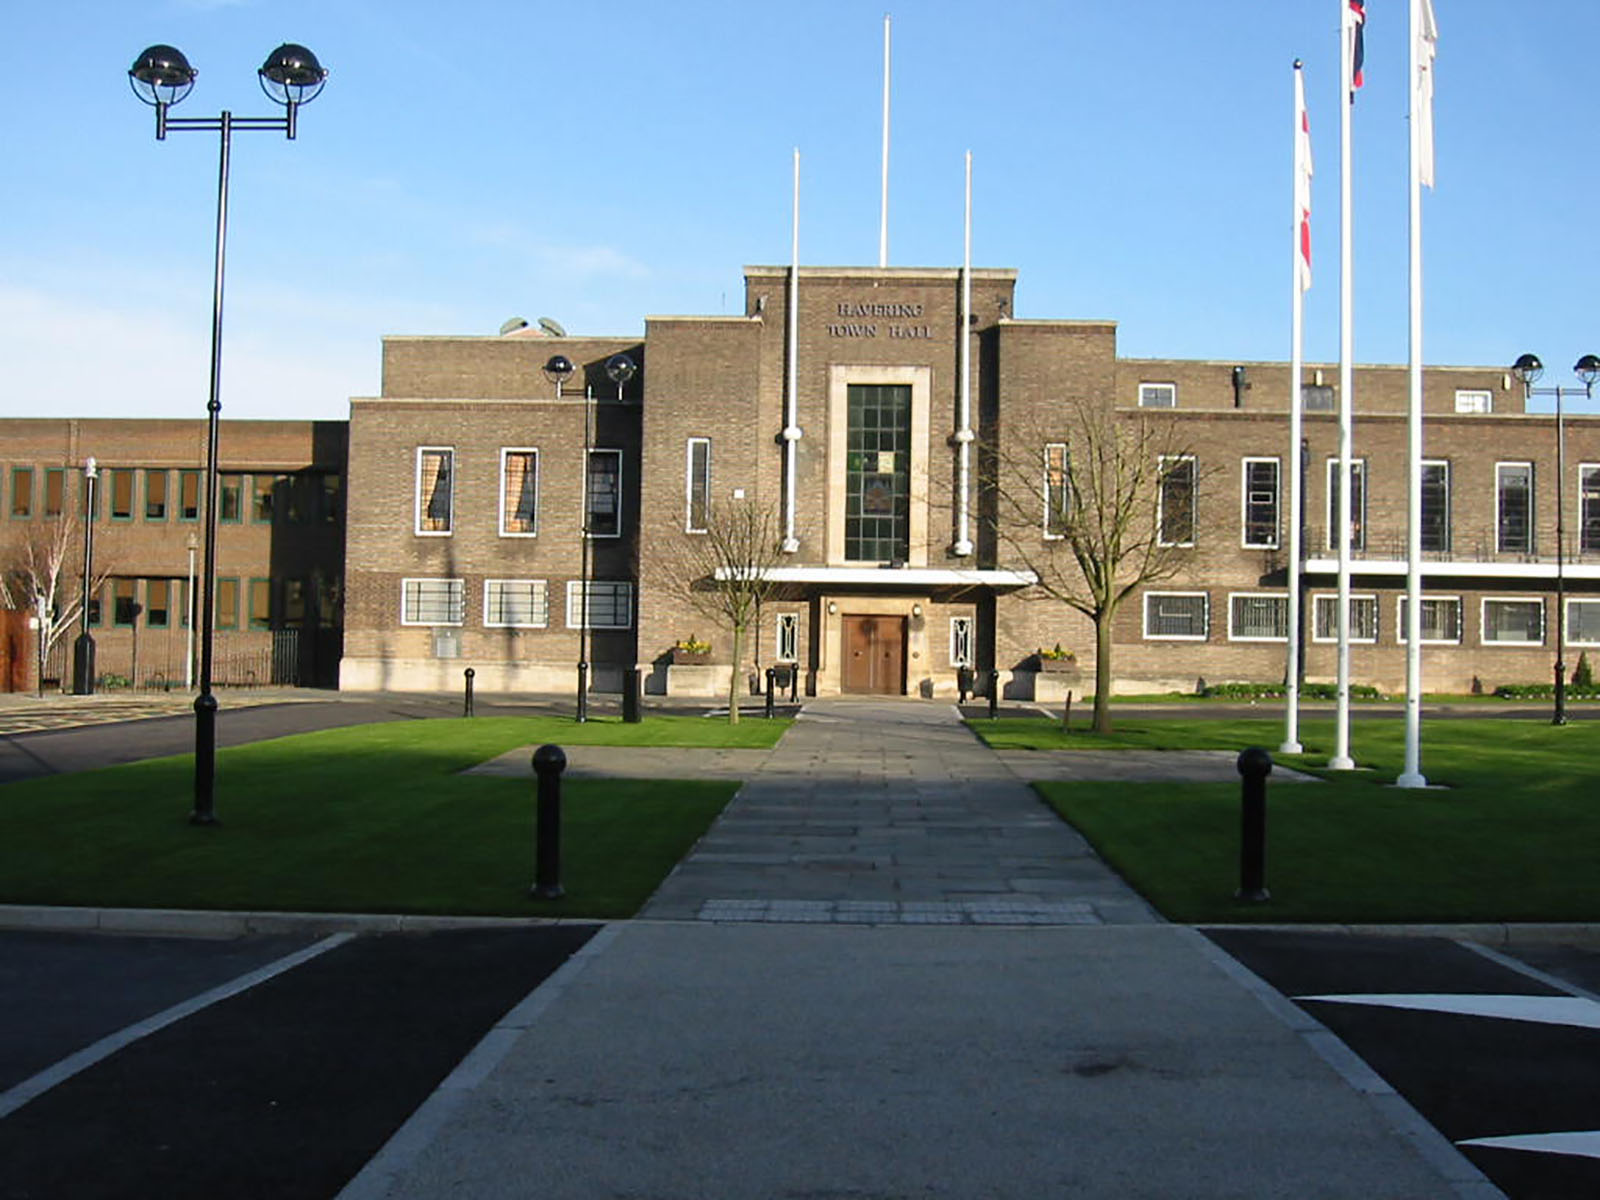 Town Hall of Havering London Borough Council.